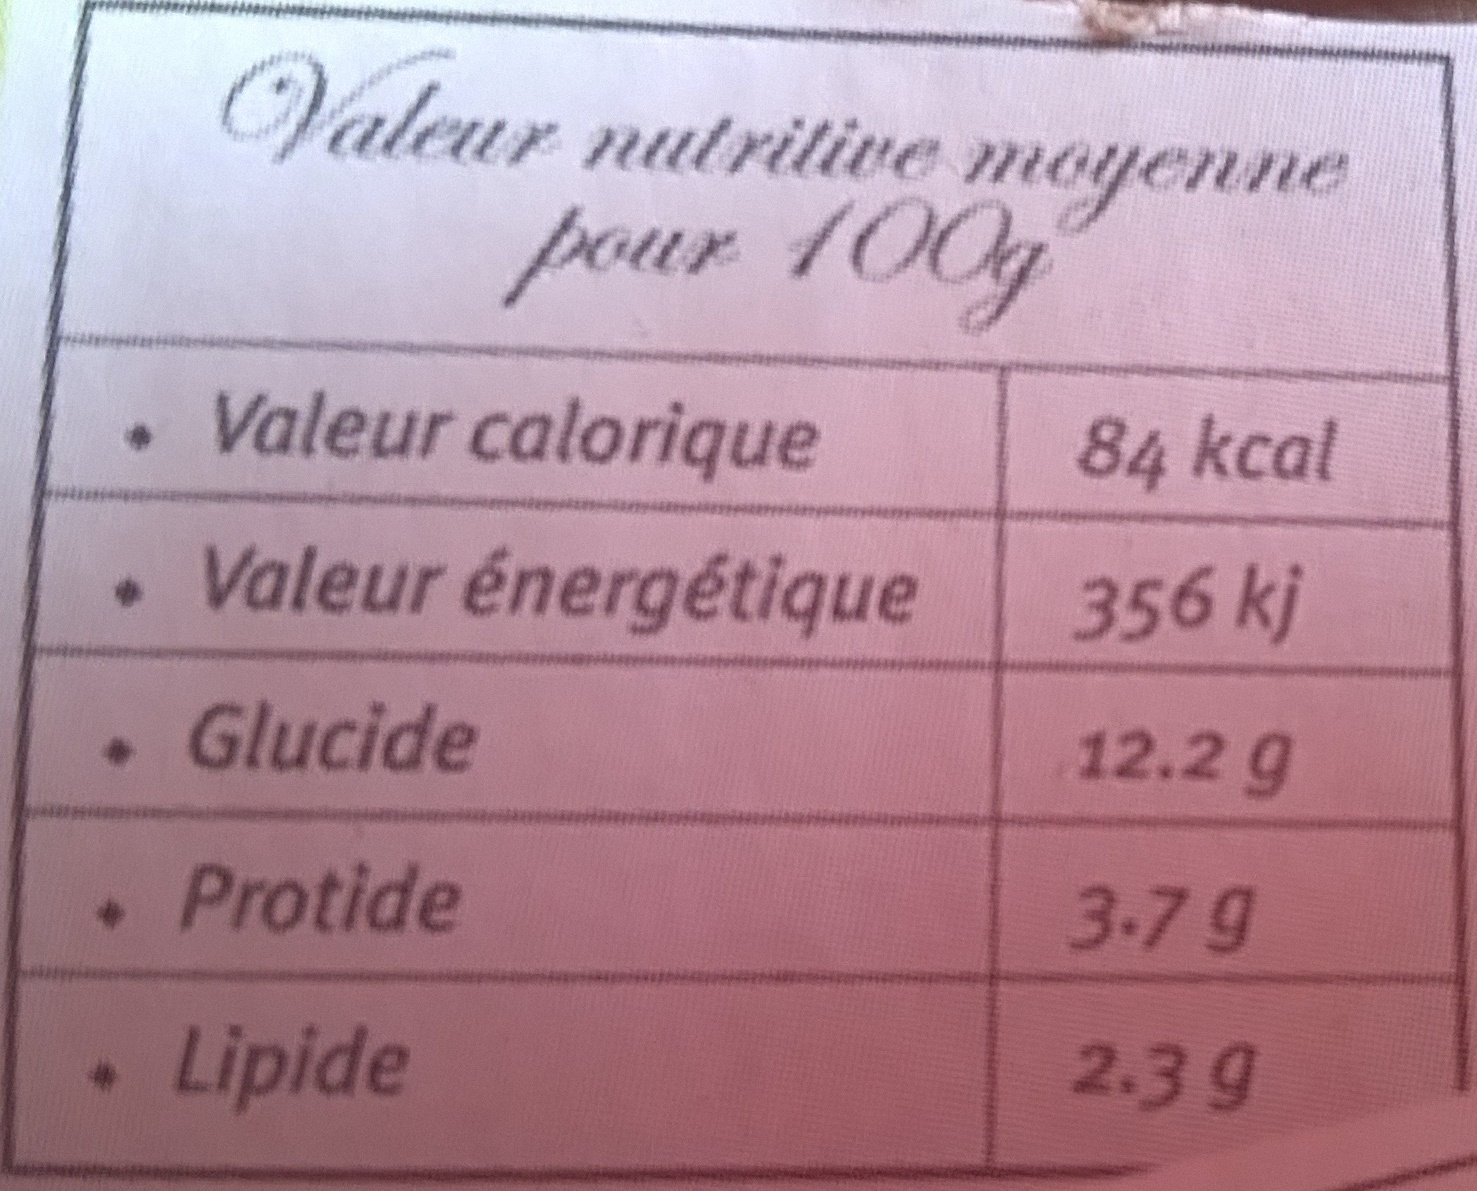 8 yaourts 4 fruits - Informations nutritionnelles - fr